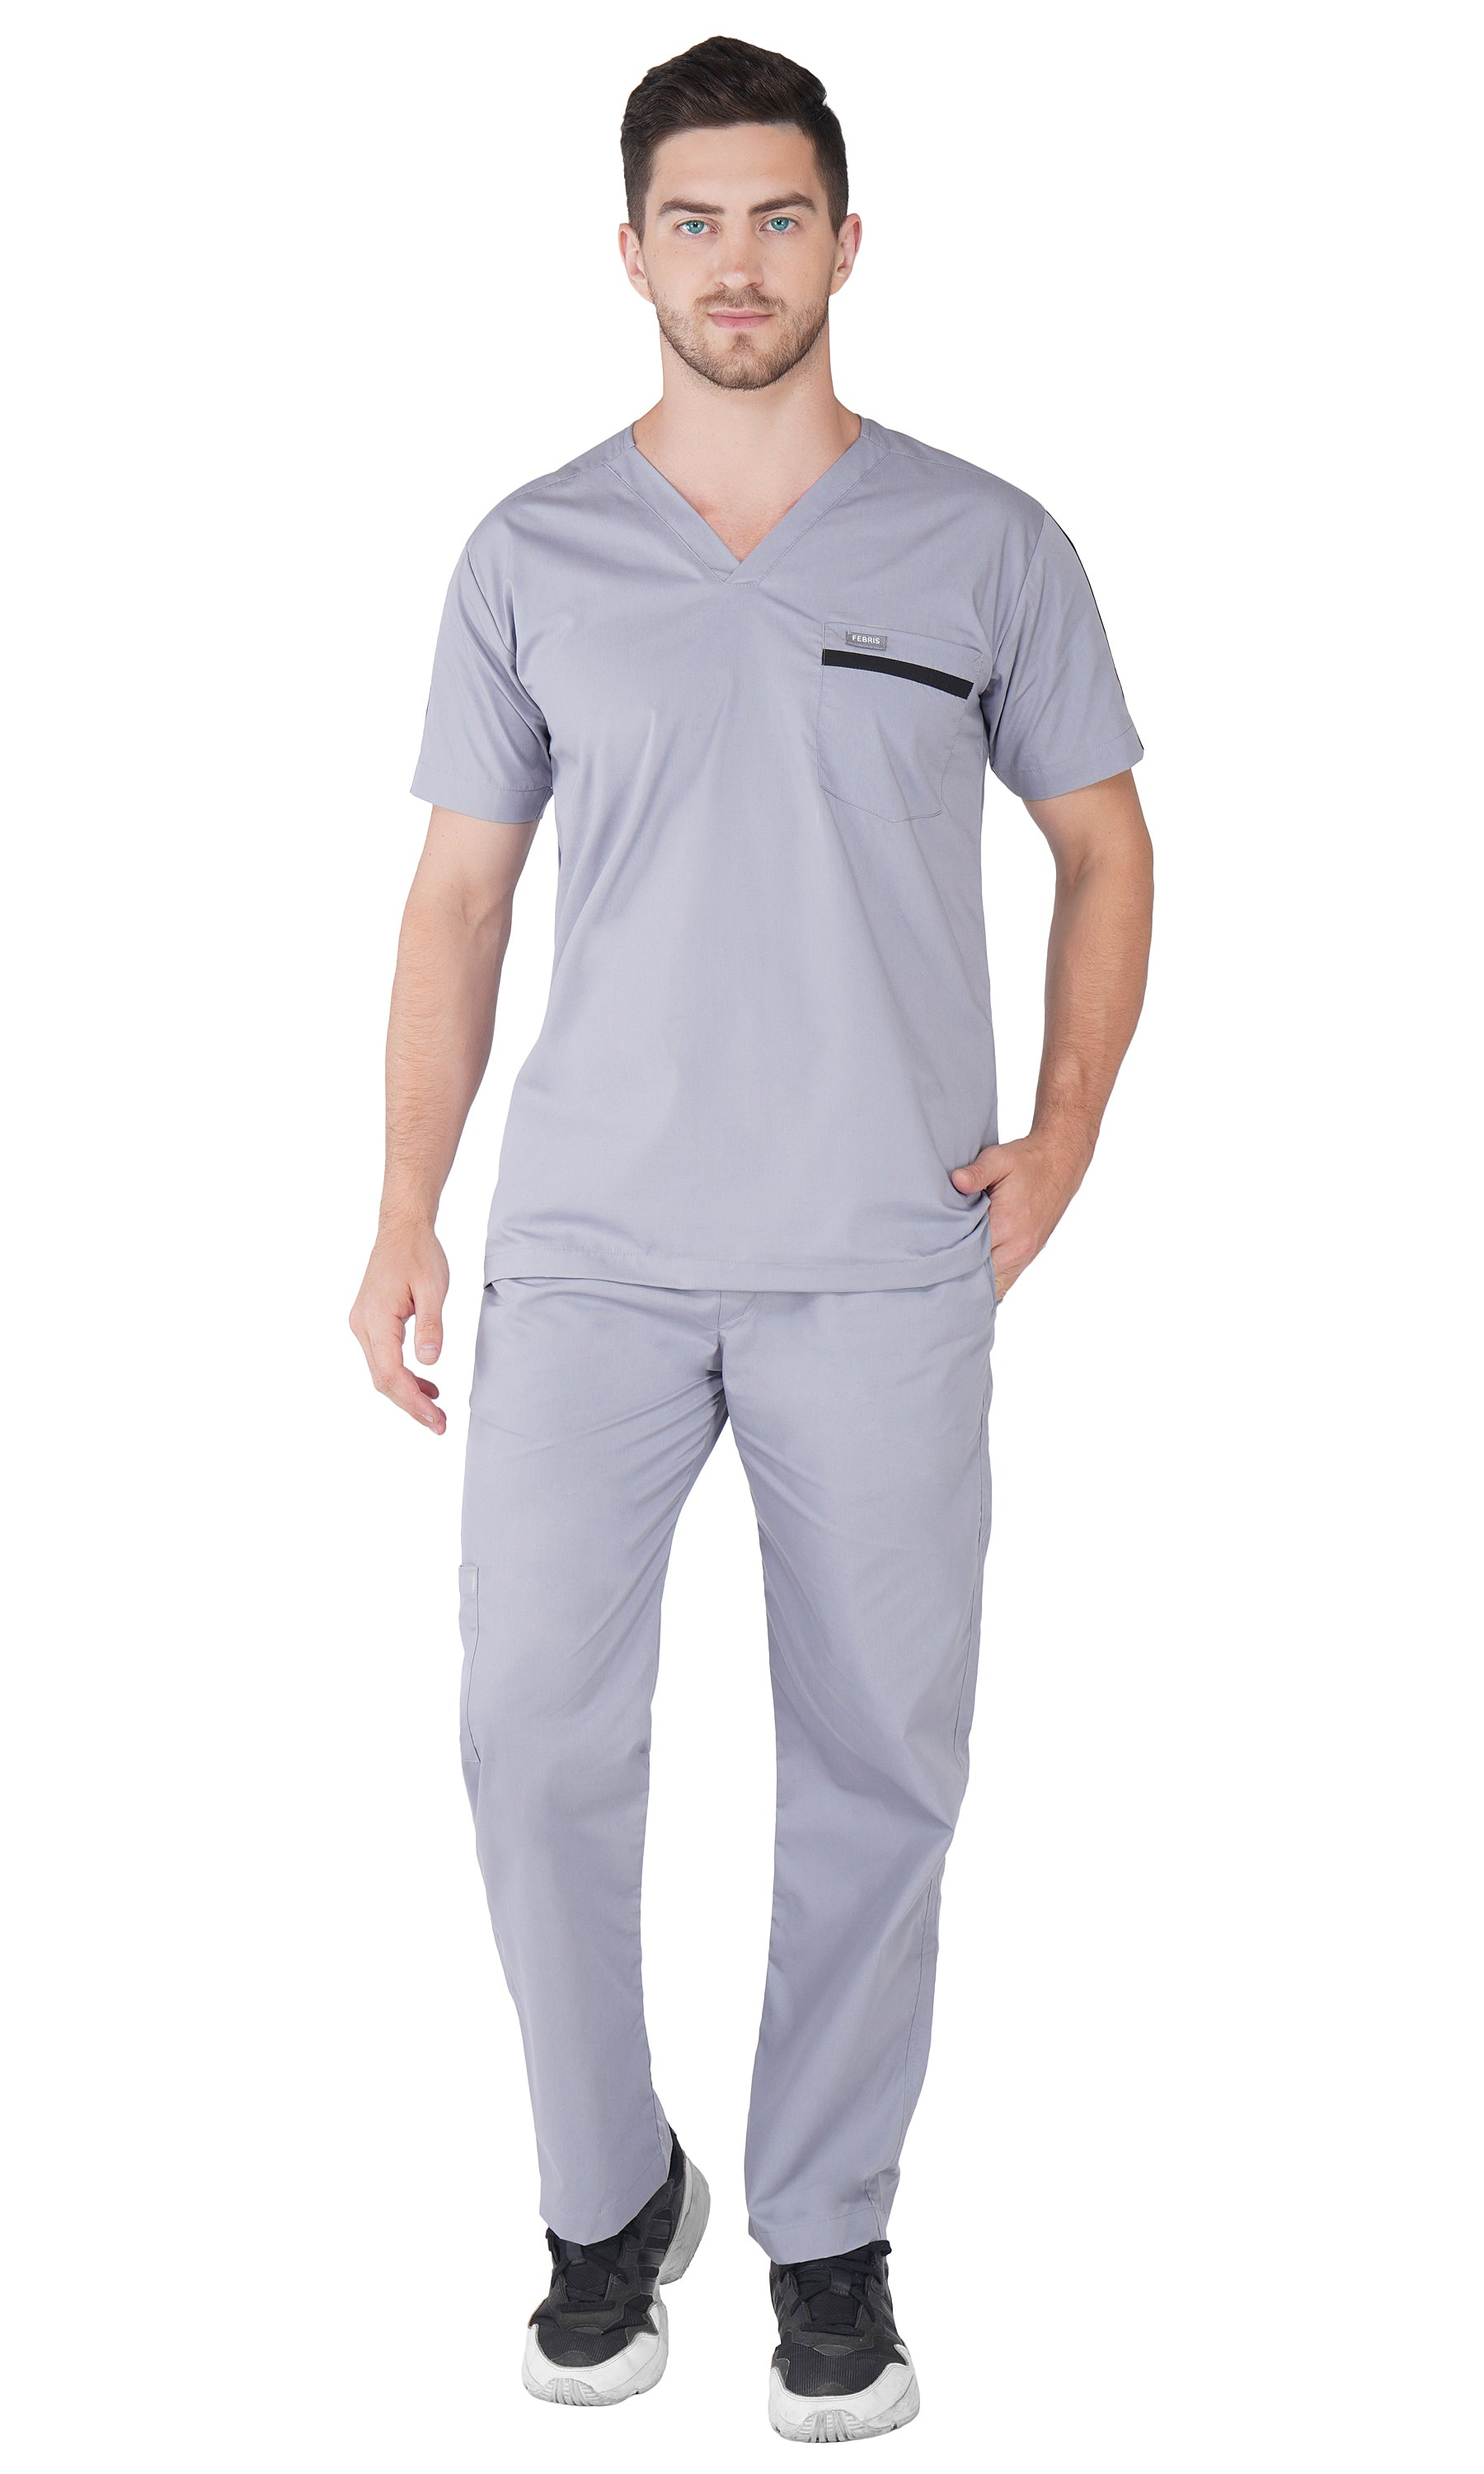 PHILLIP SCRUB TOP